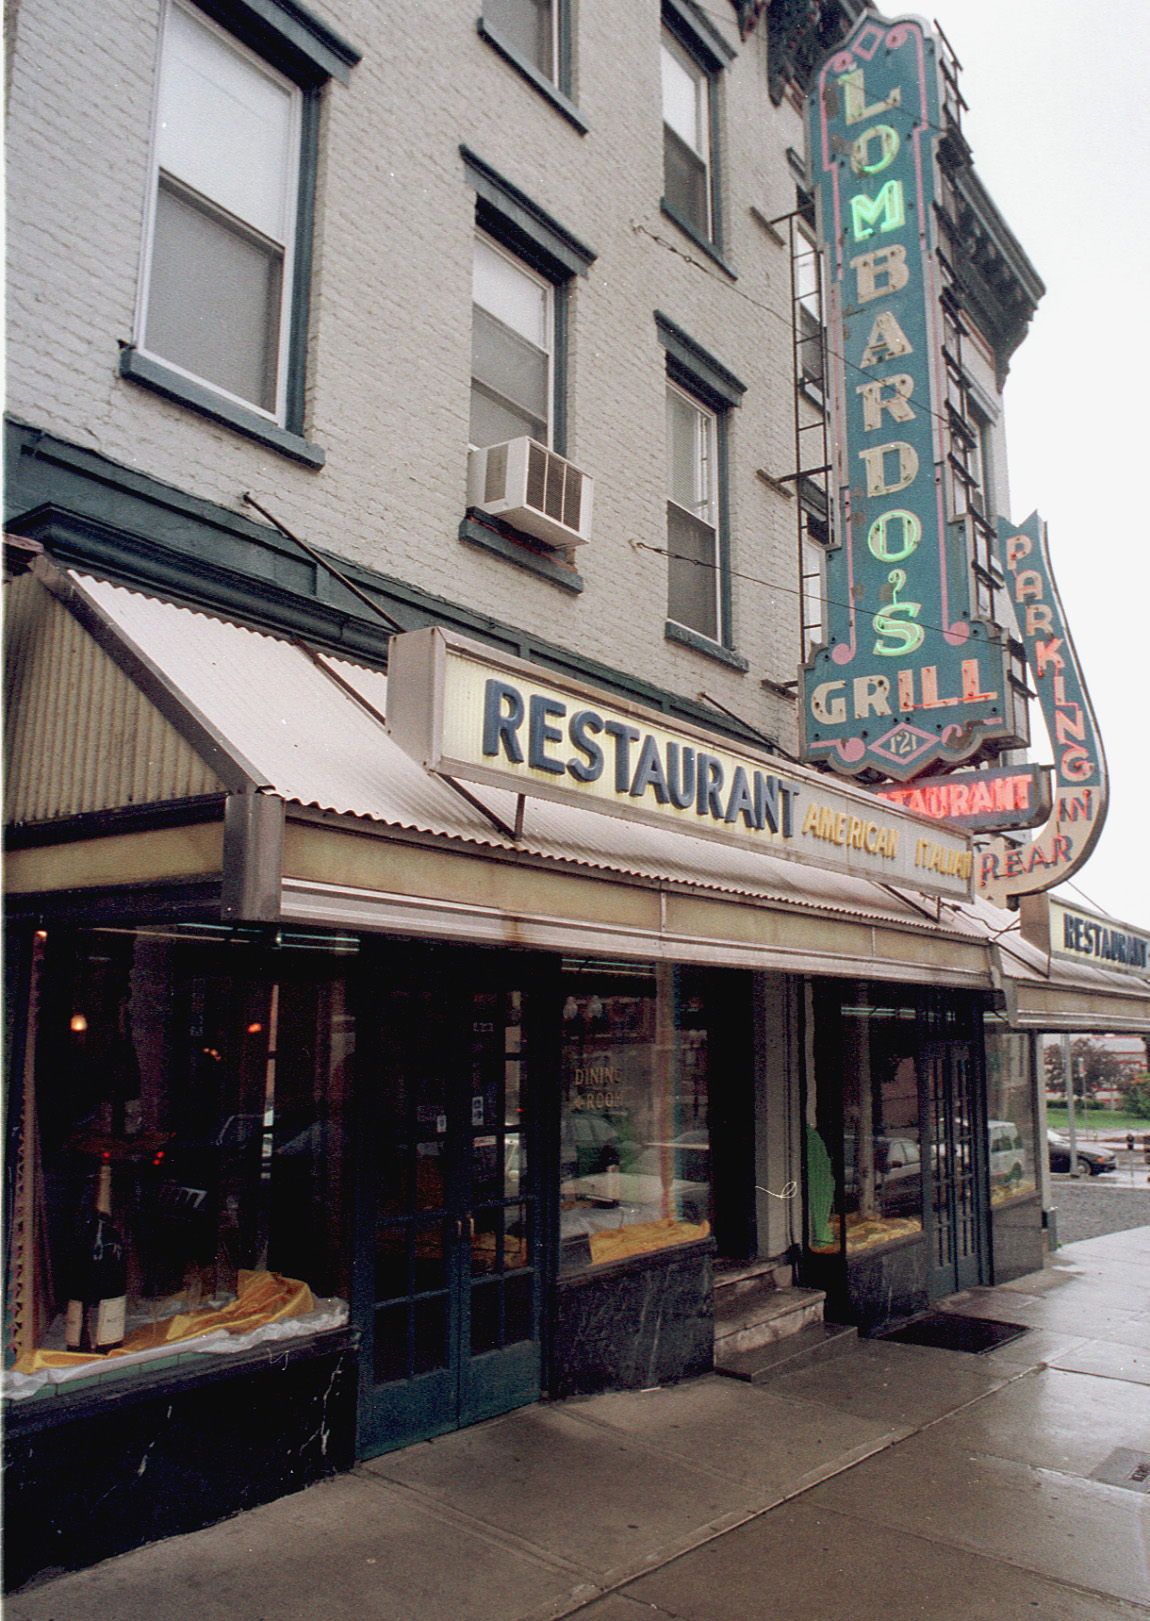 Lombardo's Restaurant closing after nearly 100 years - Times